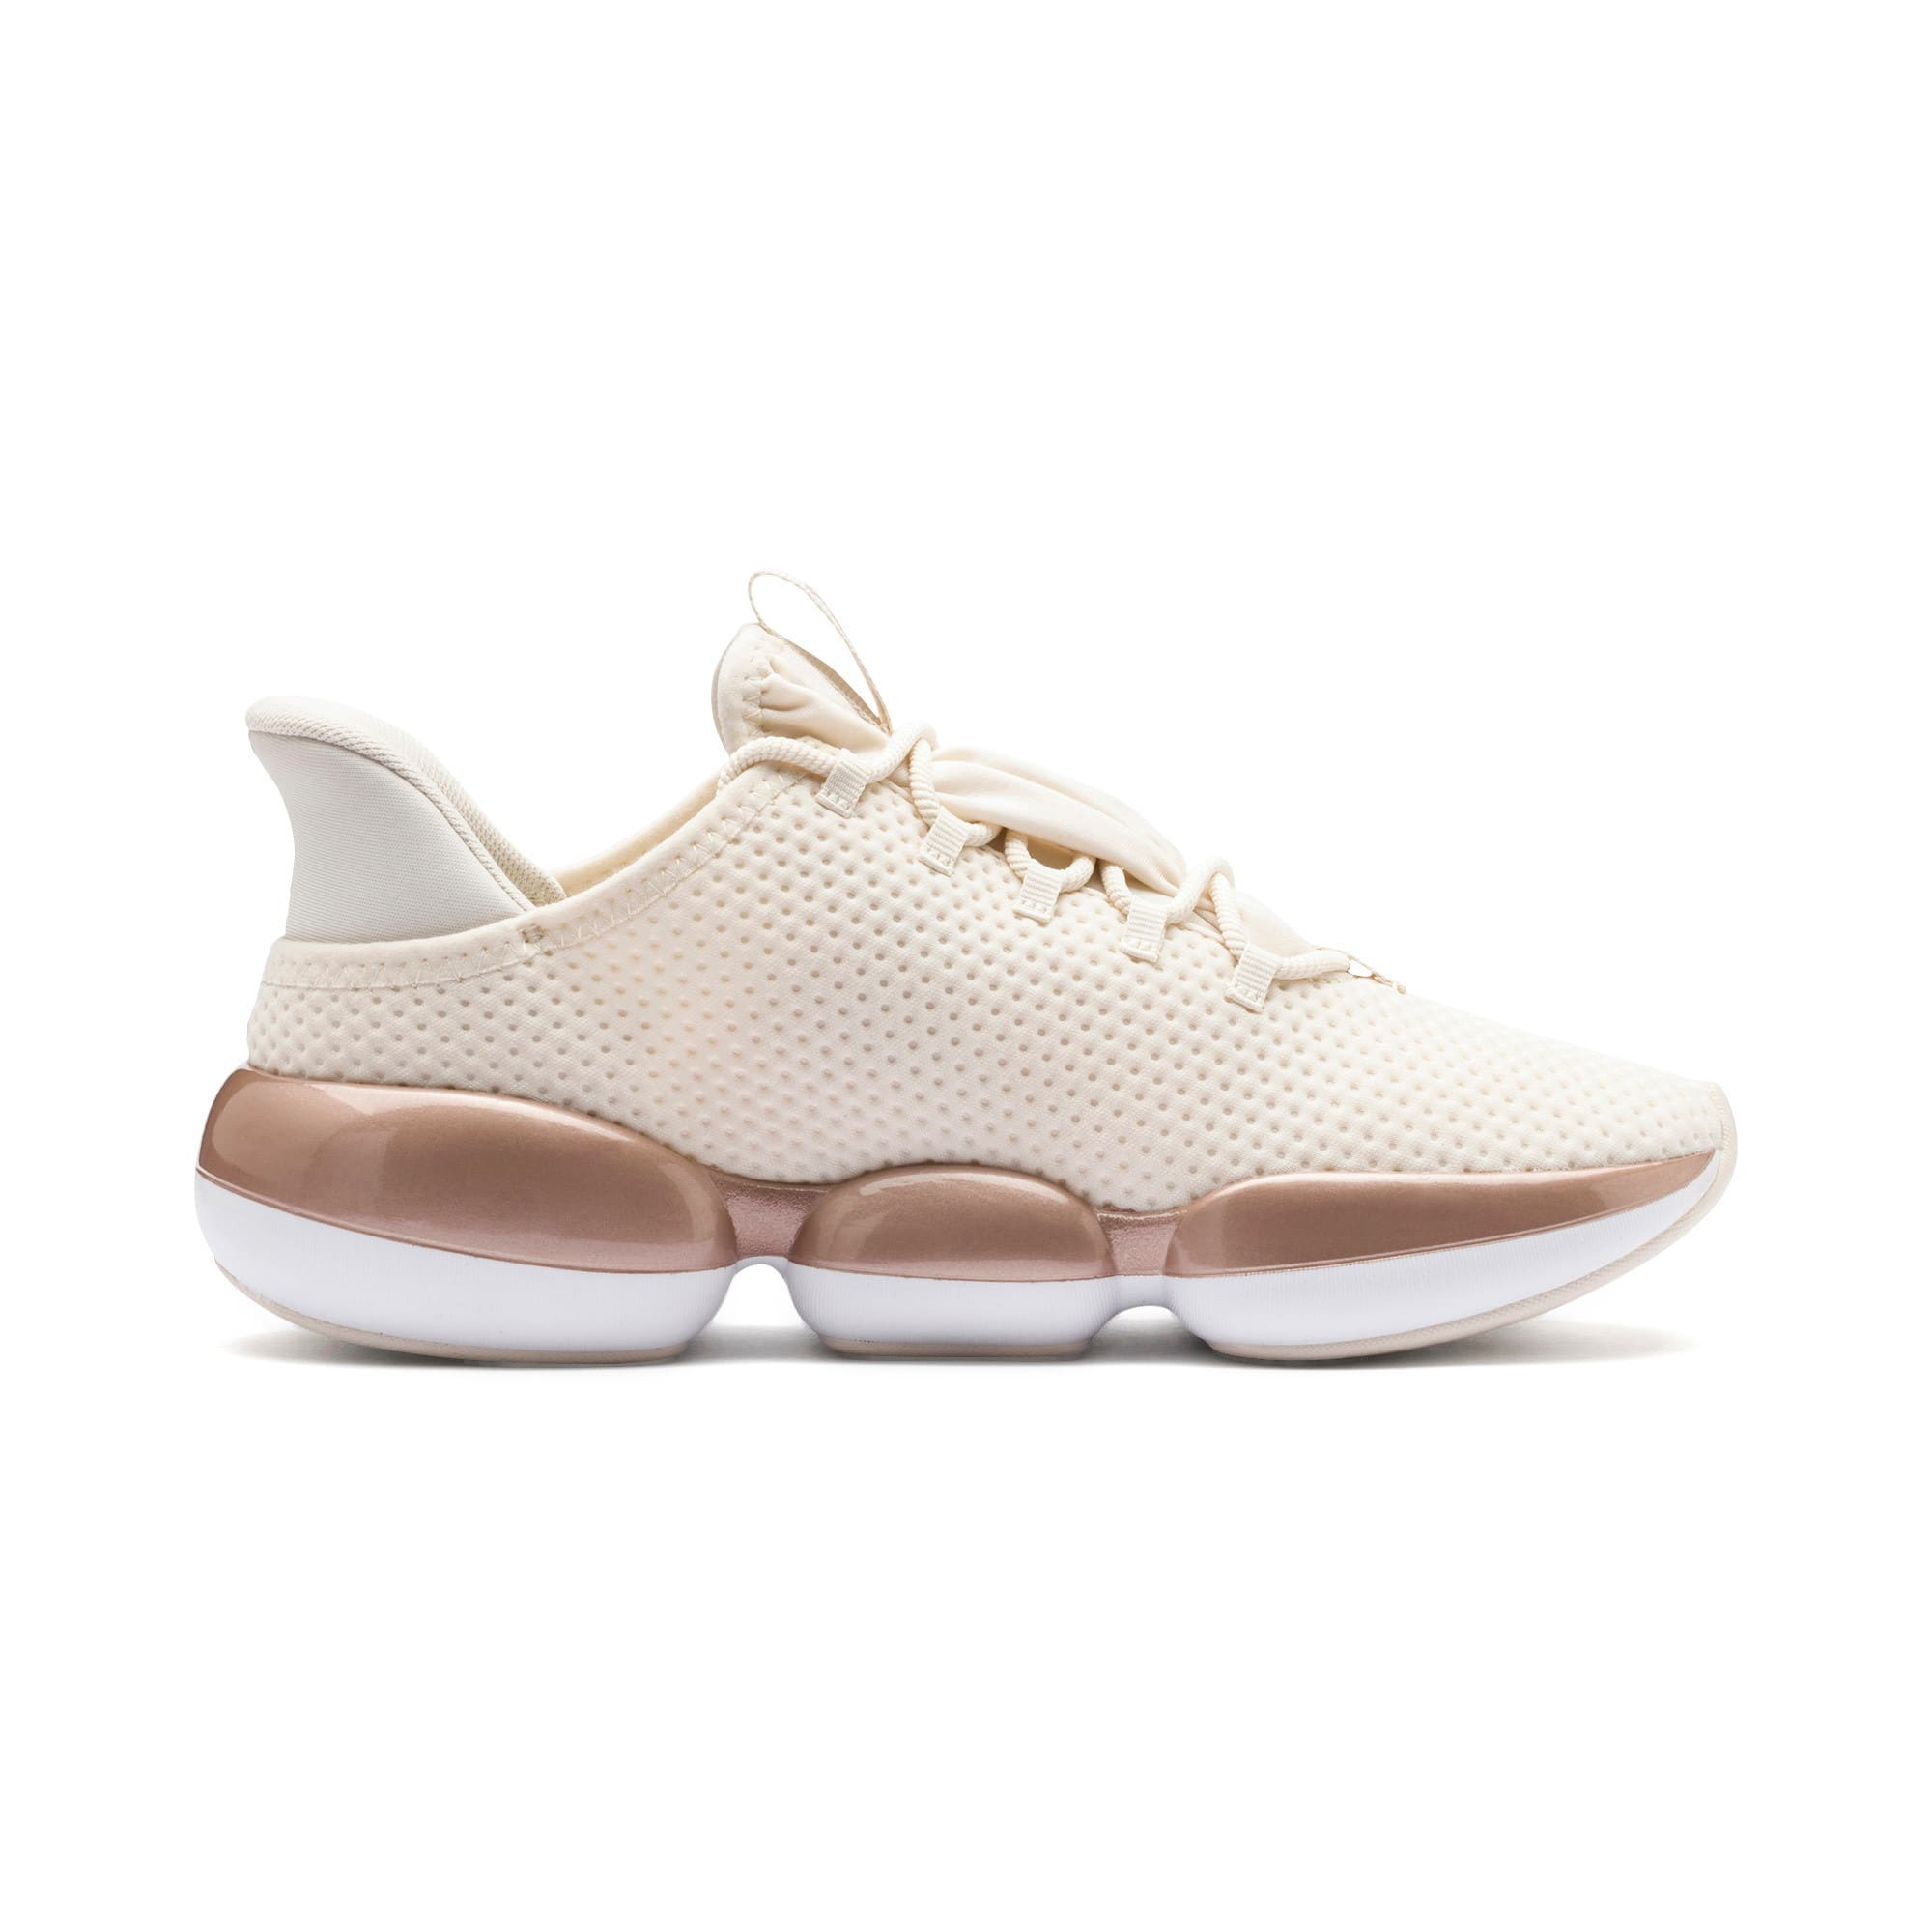 Thumbnail 6 of Mode XT Women's Training Trainers, Pastel Parchment-Rose Gold, medium